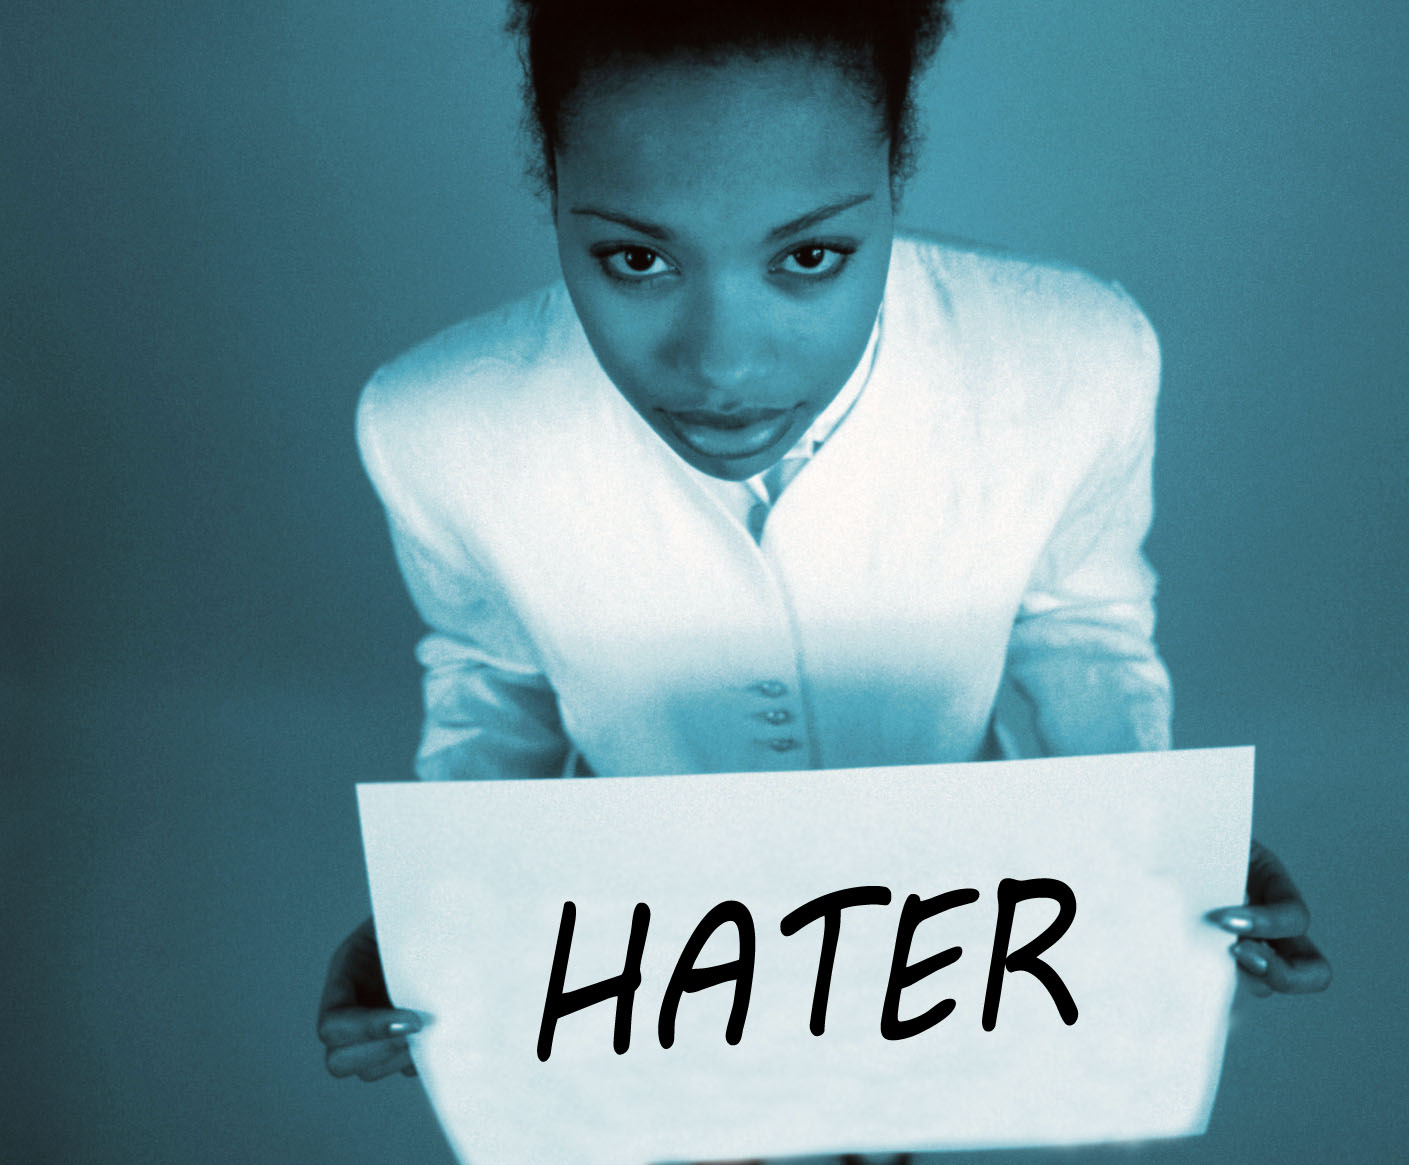 Green-Eyed Diva: 5 Steps to Conquer the Hater in You